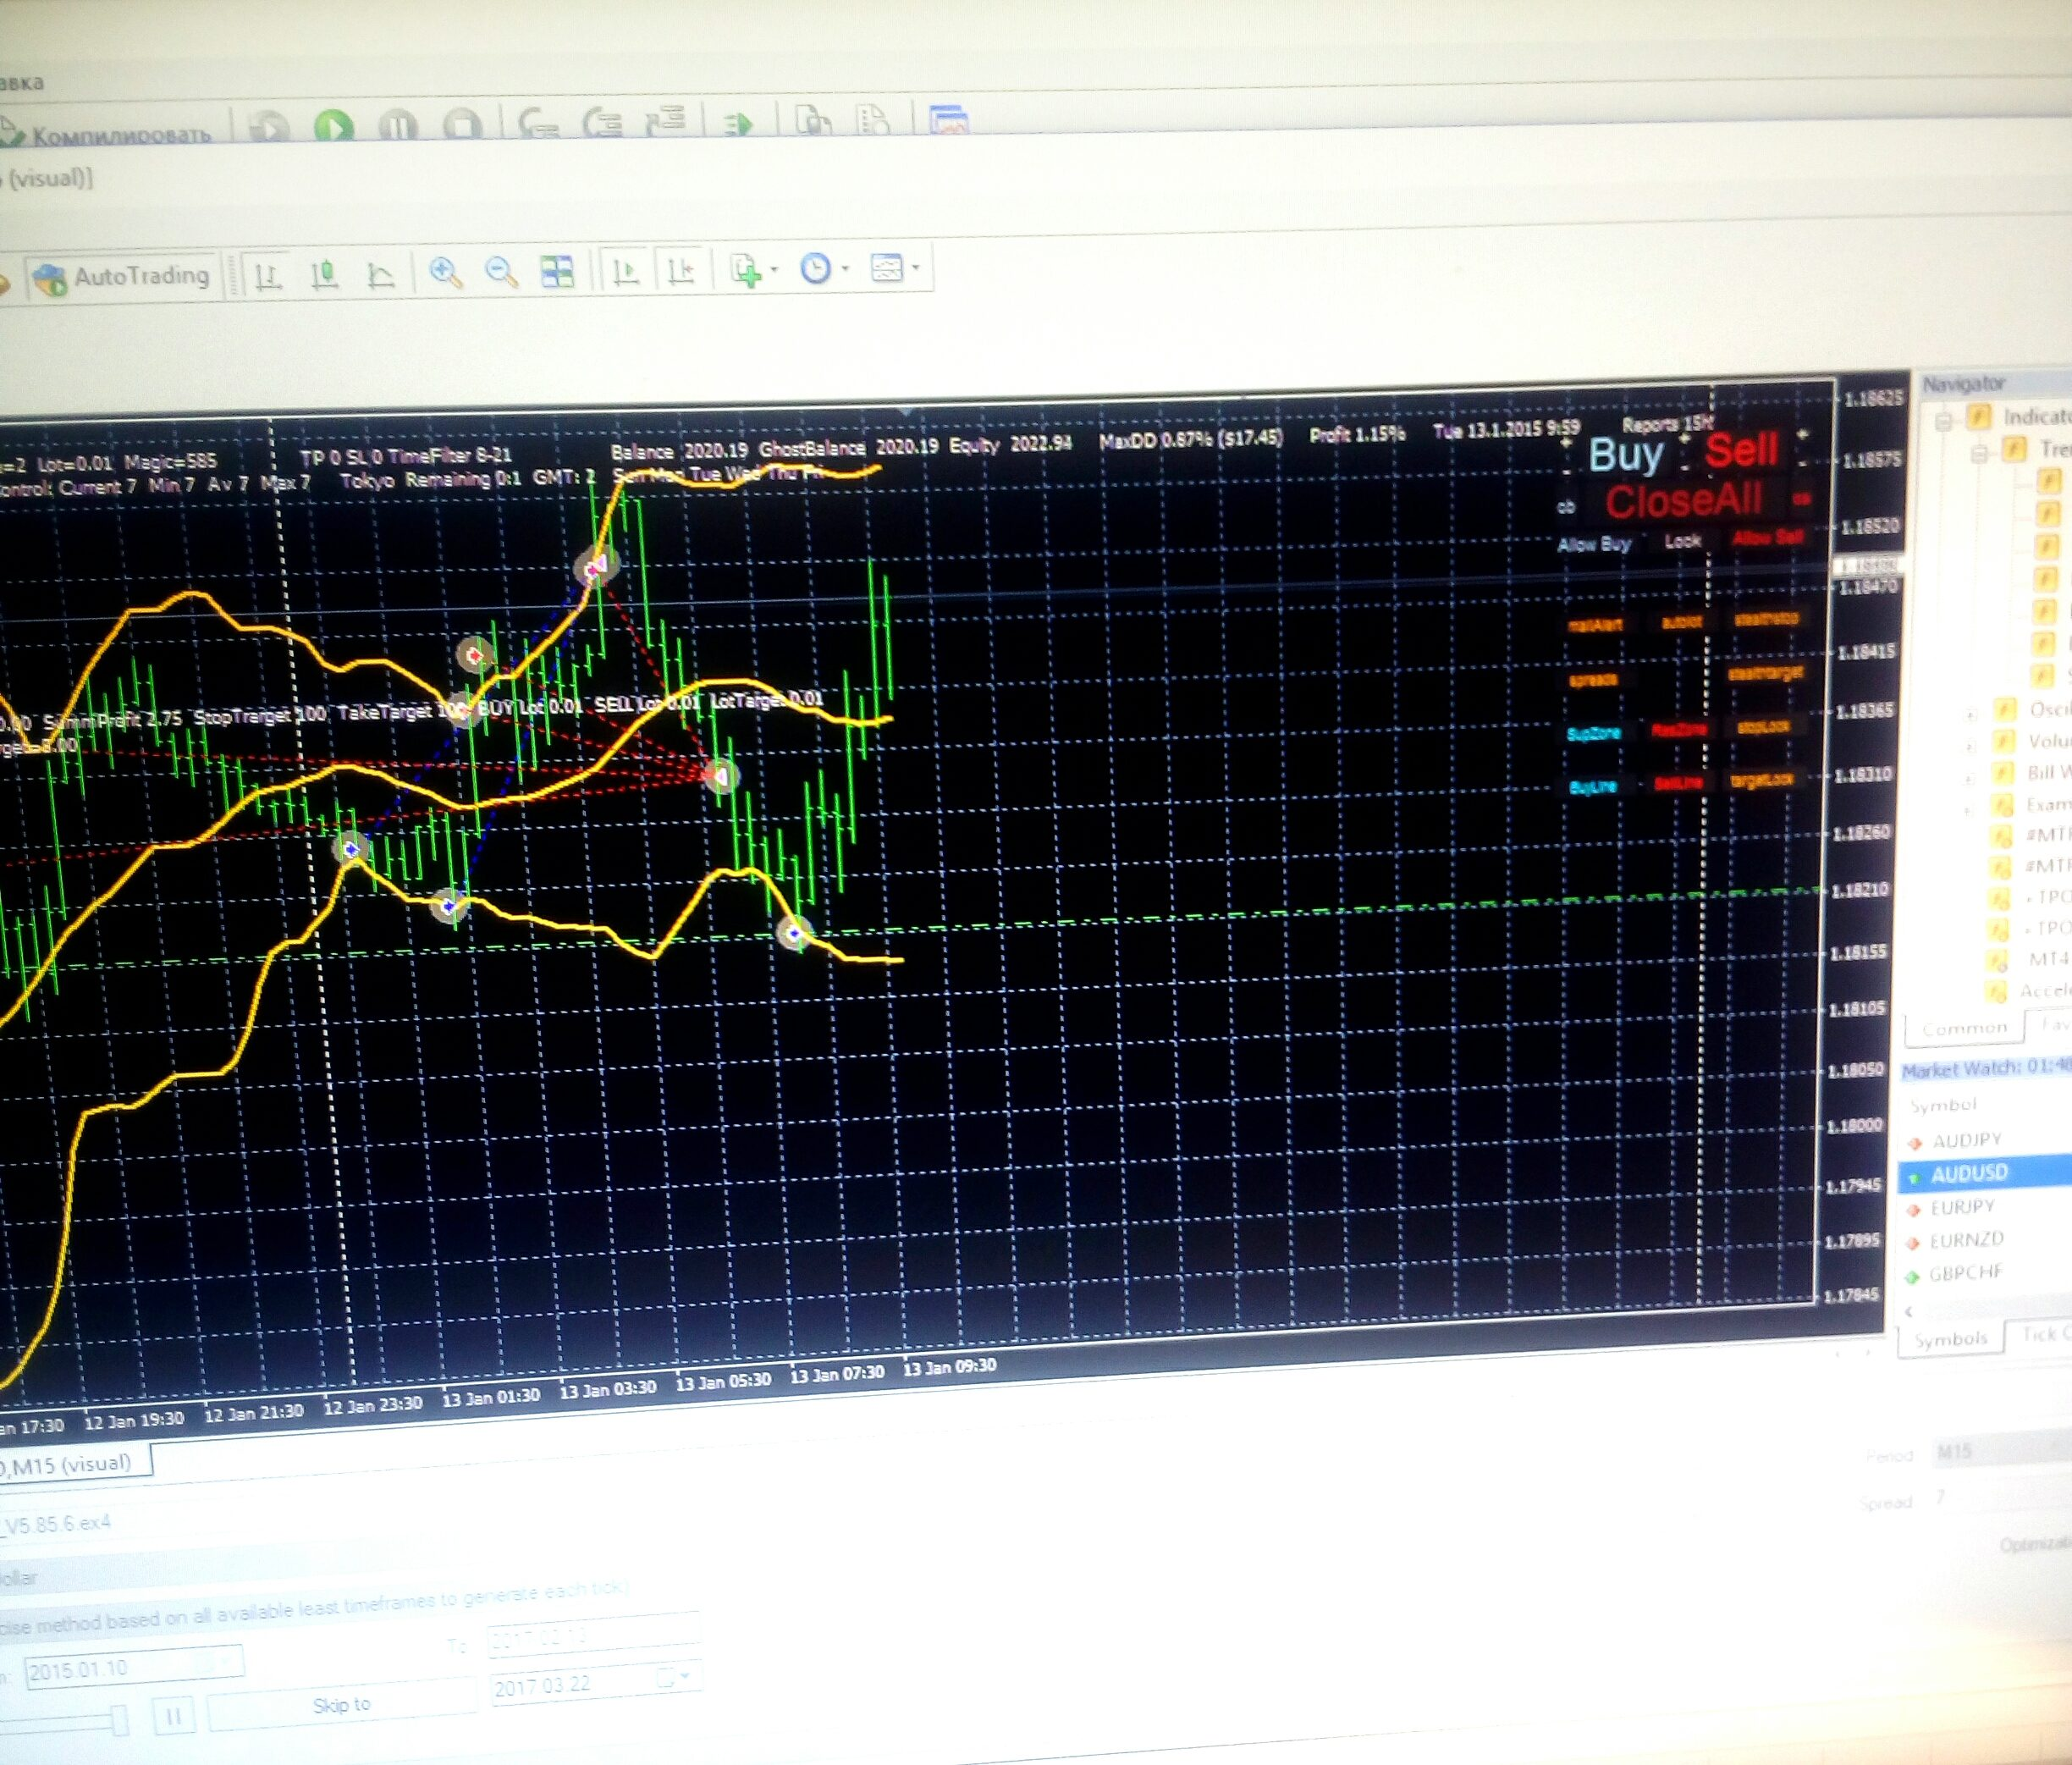 Bollinger bands risks